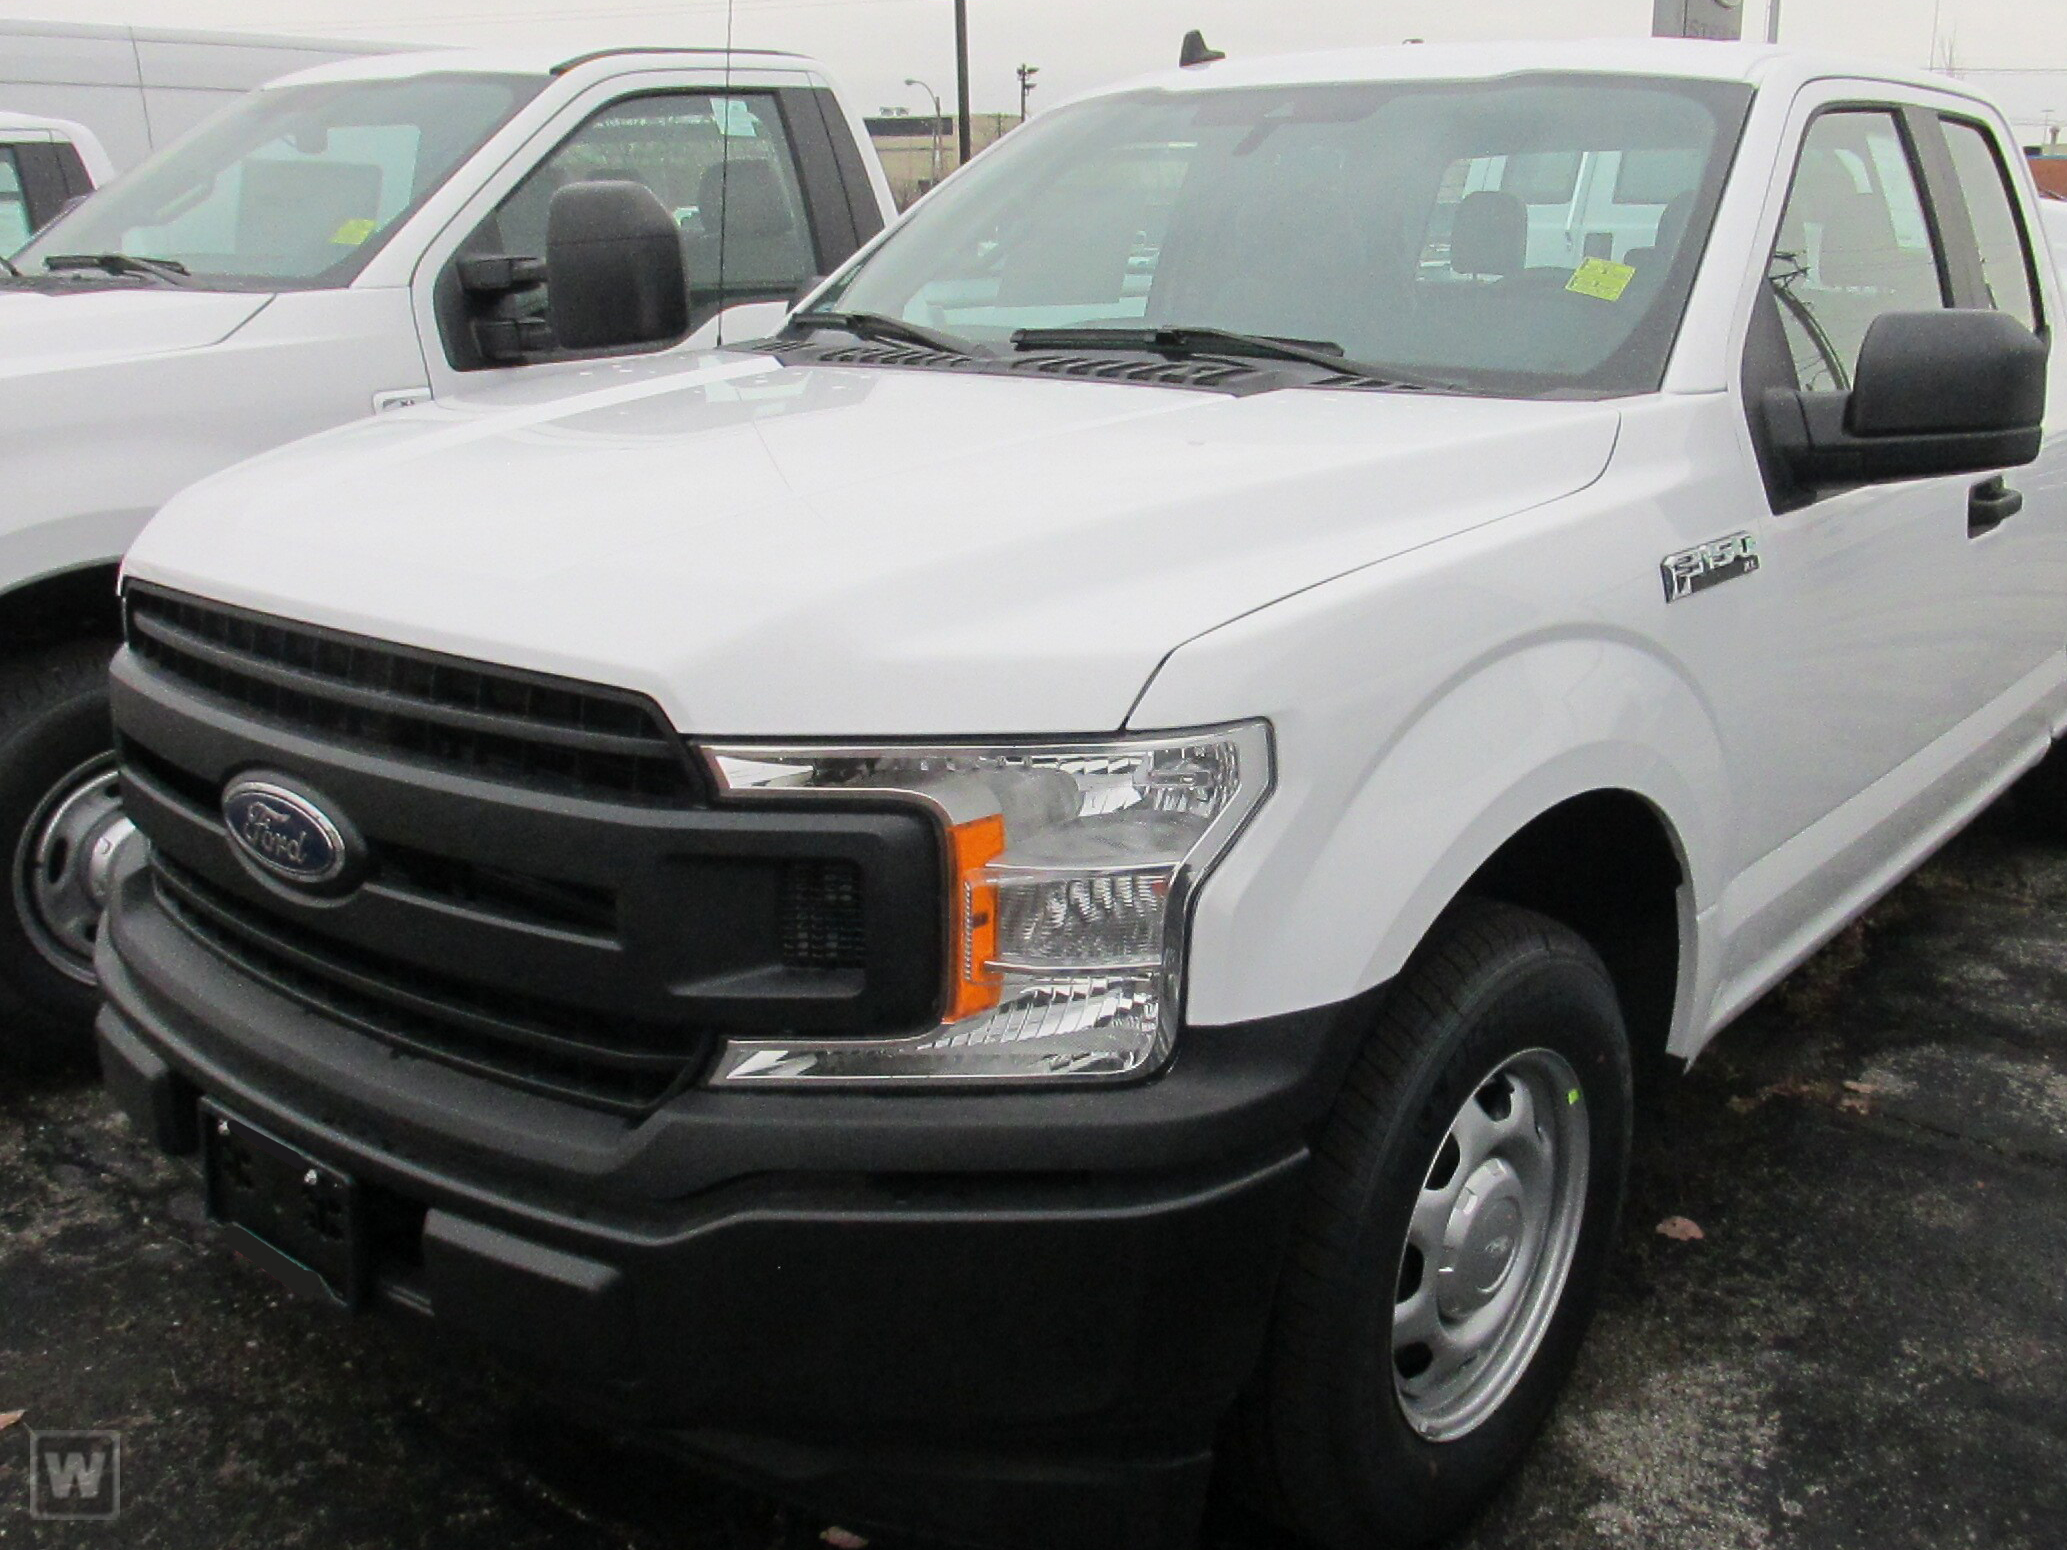 2020 F-150 Super Cab 4x4, Pickup #2210 - photo 1